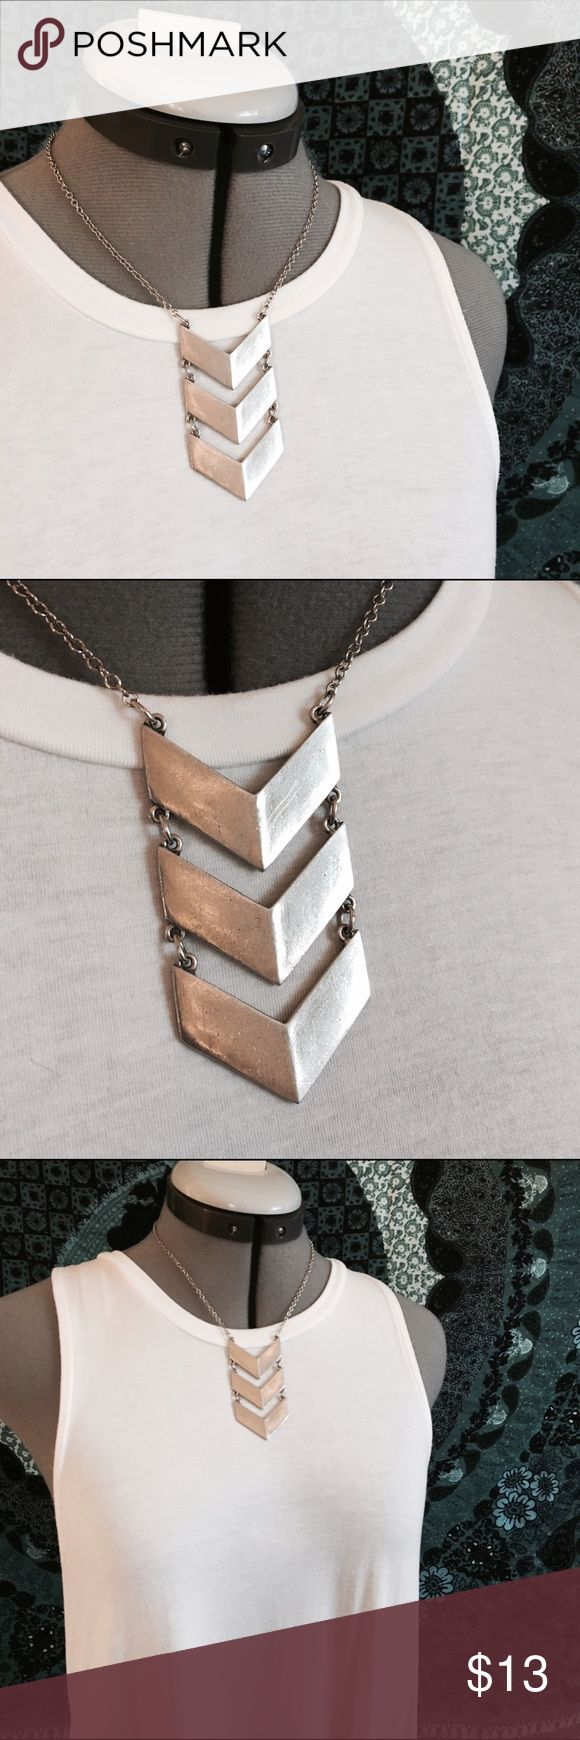 Silver 3 arrow necklace NEVER WORN NWOT silver 3 tier arrow necklace Jewelry Necklaces